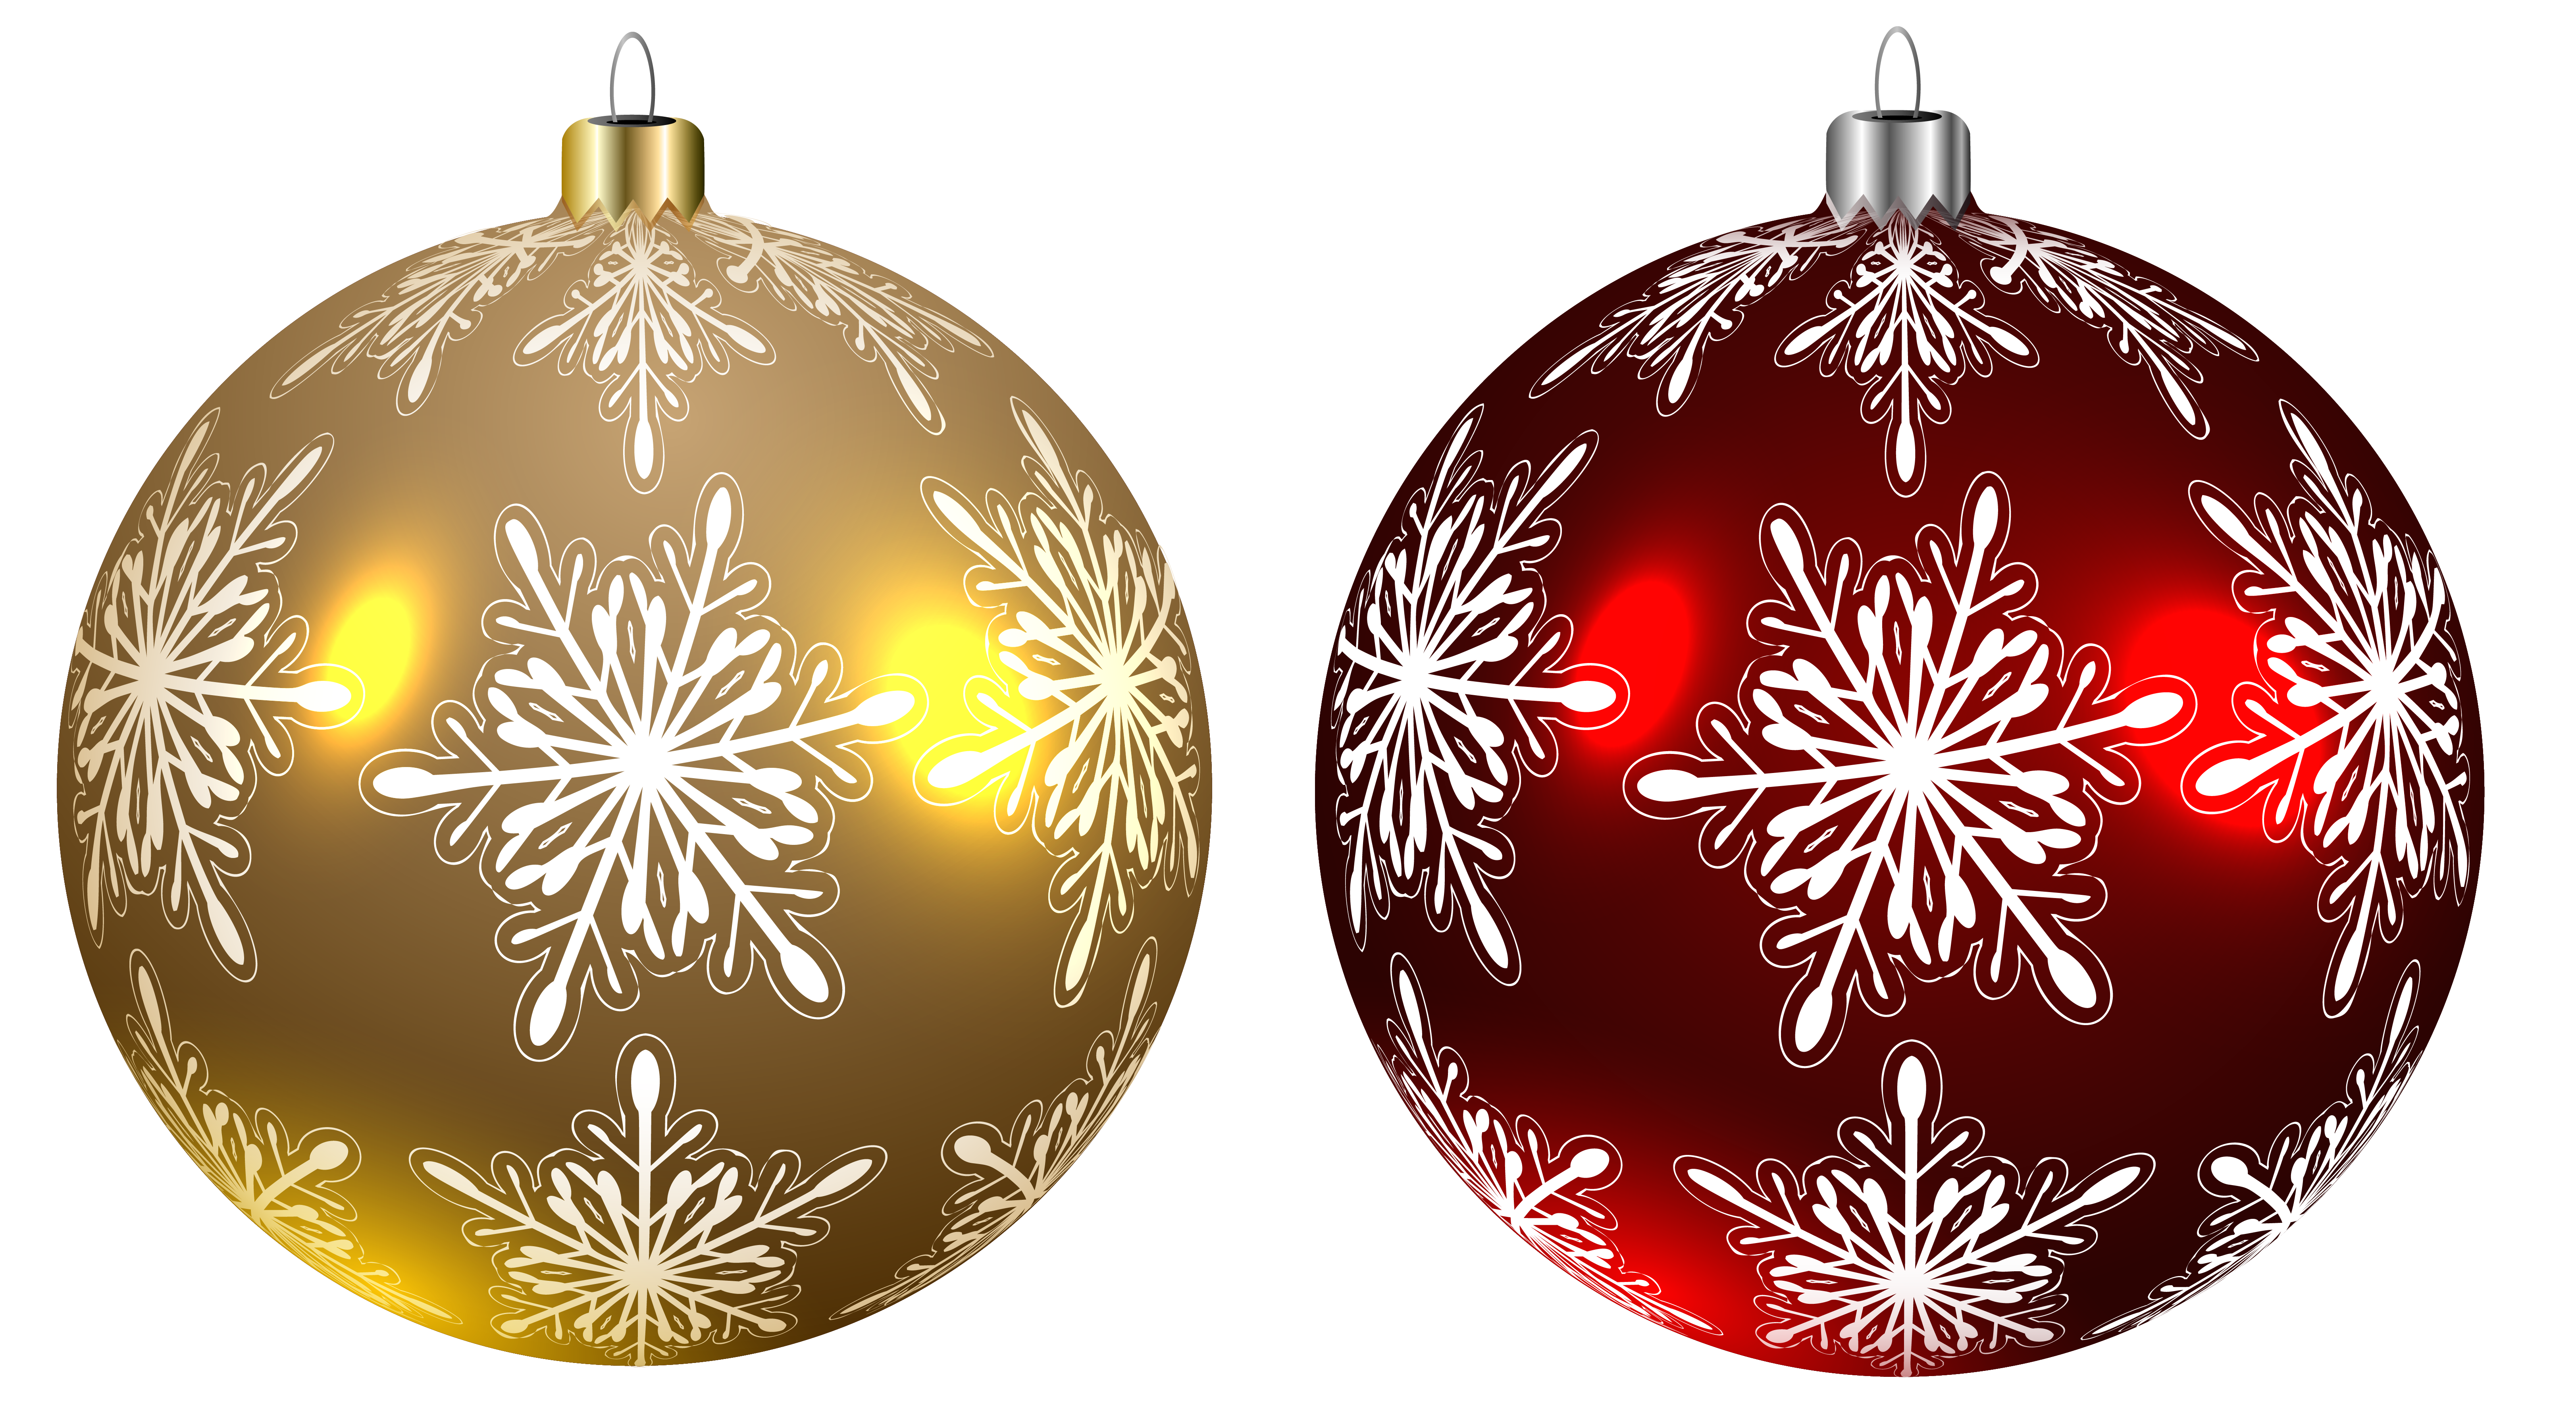 Clipart christmas banner red snowflake jpg freeuse download Christmas Balls Yellow and Red Transparent PNG Clipart Image ... jpg freeuse download